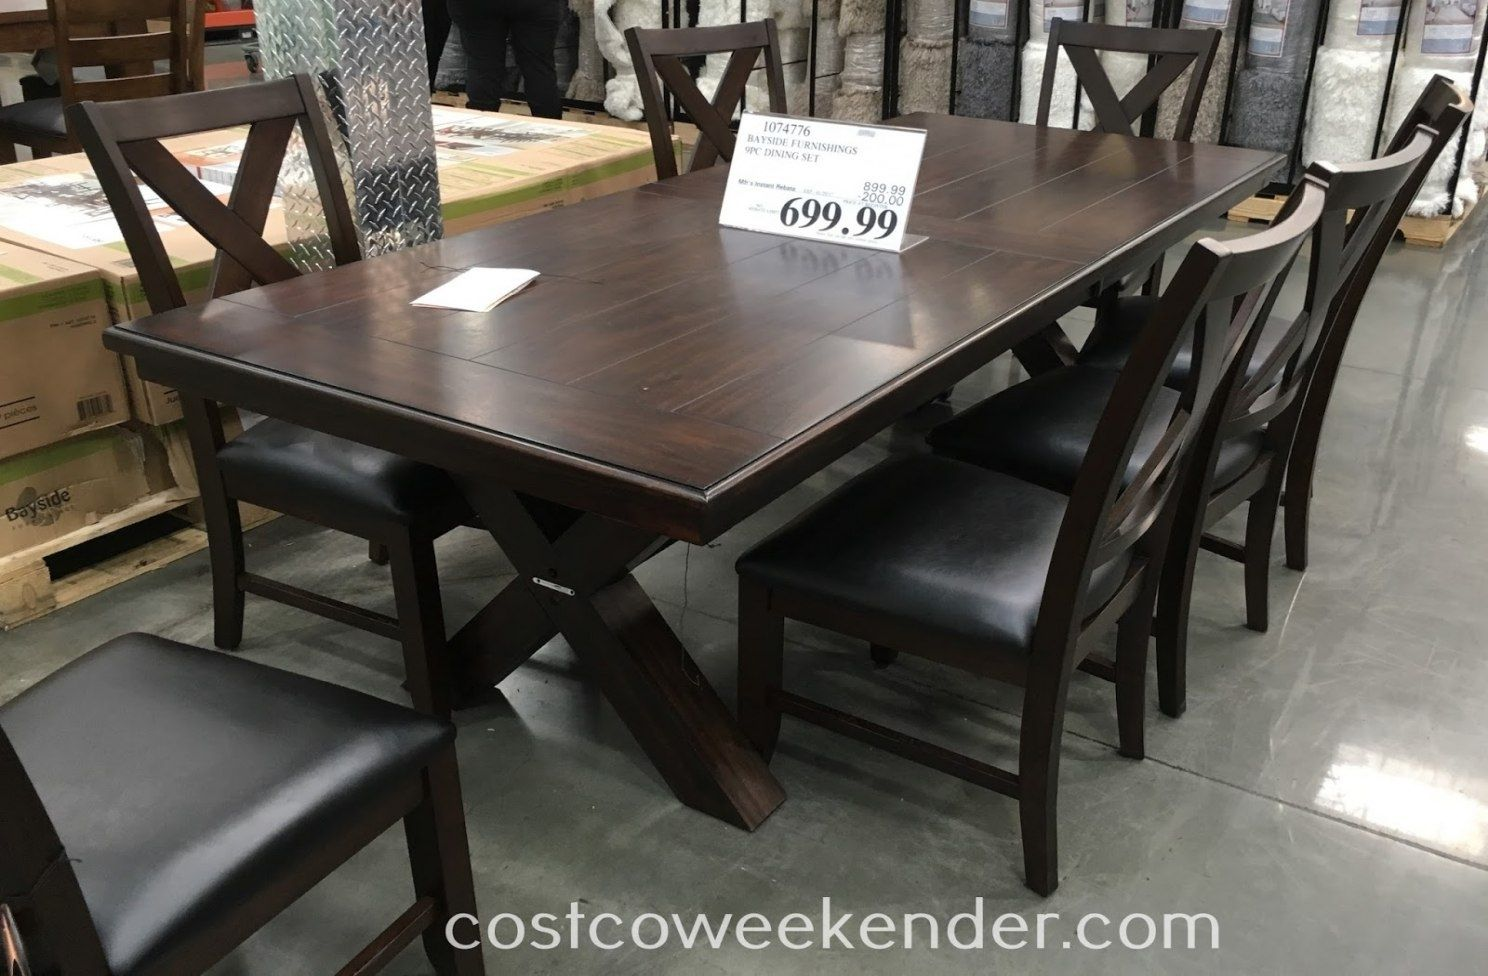 10+ Costco Kitchen Table and Chairs - Kitchen Design Ideas for